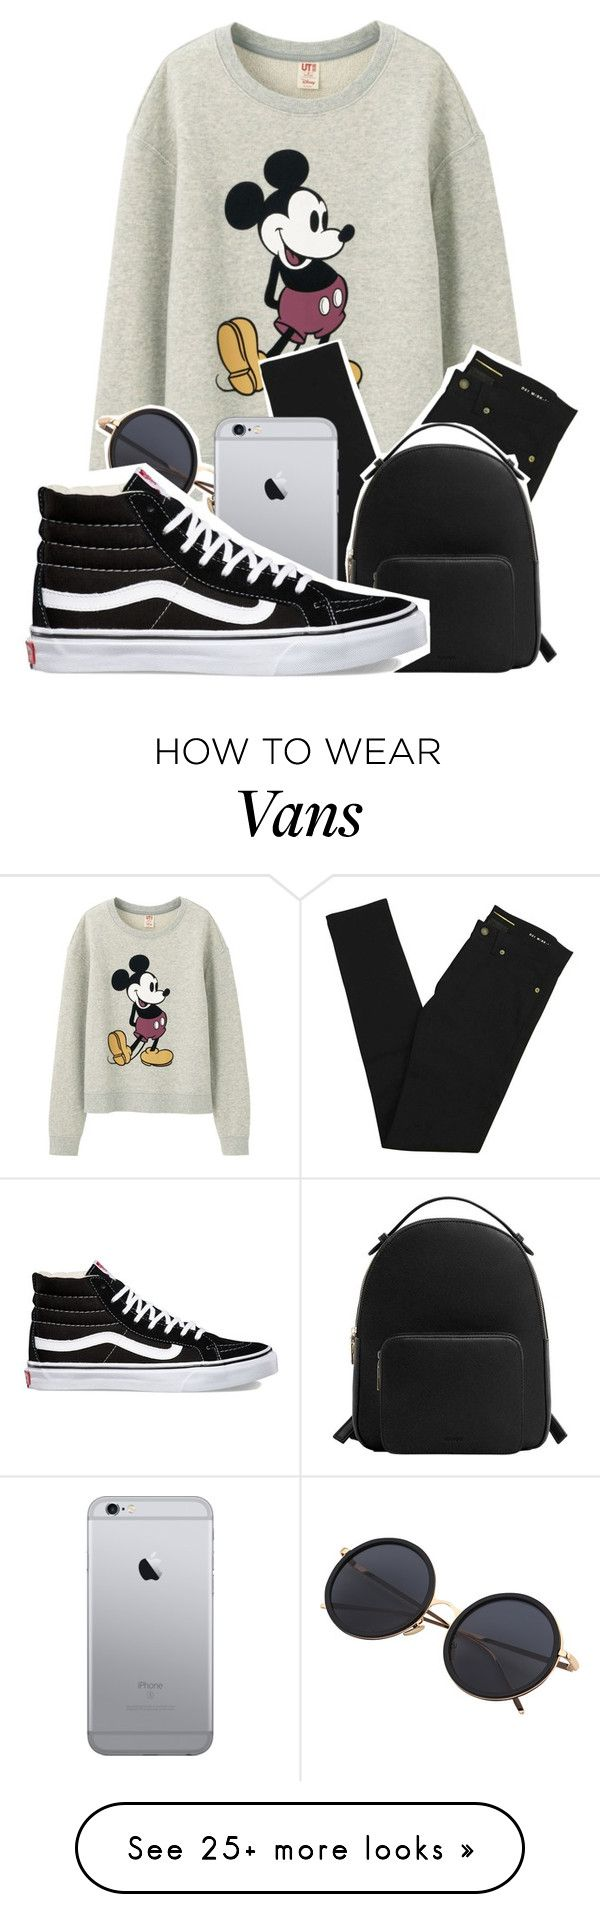 """Untitled #4"" by kimiaki on Polyvore featuring Uniqlo, Yves Saint Laurent, MANGO and Vans"